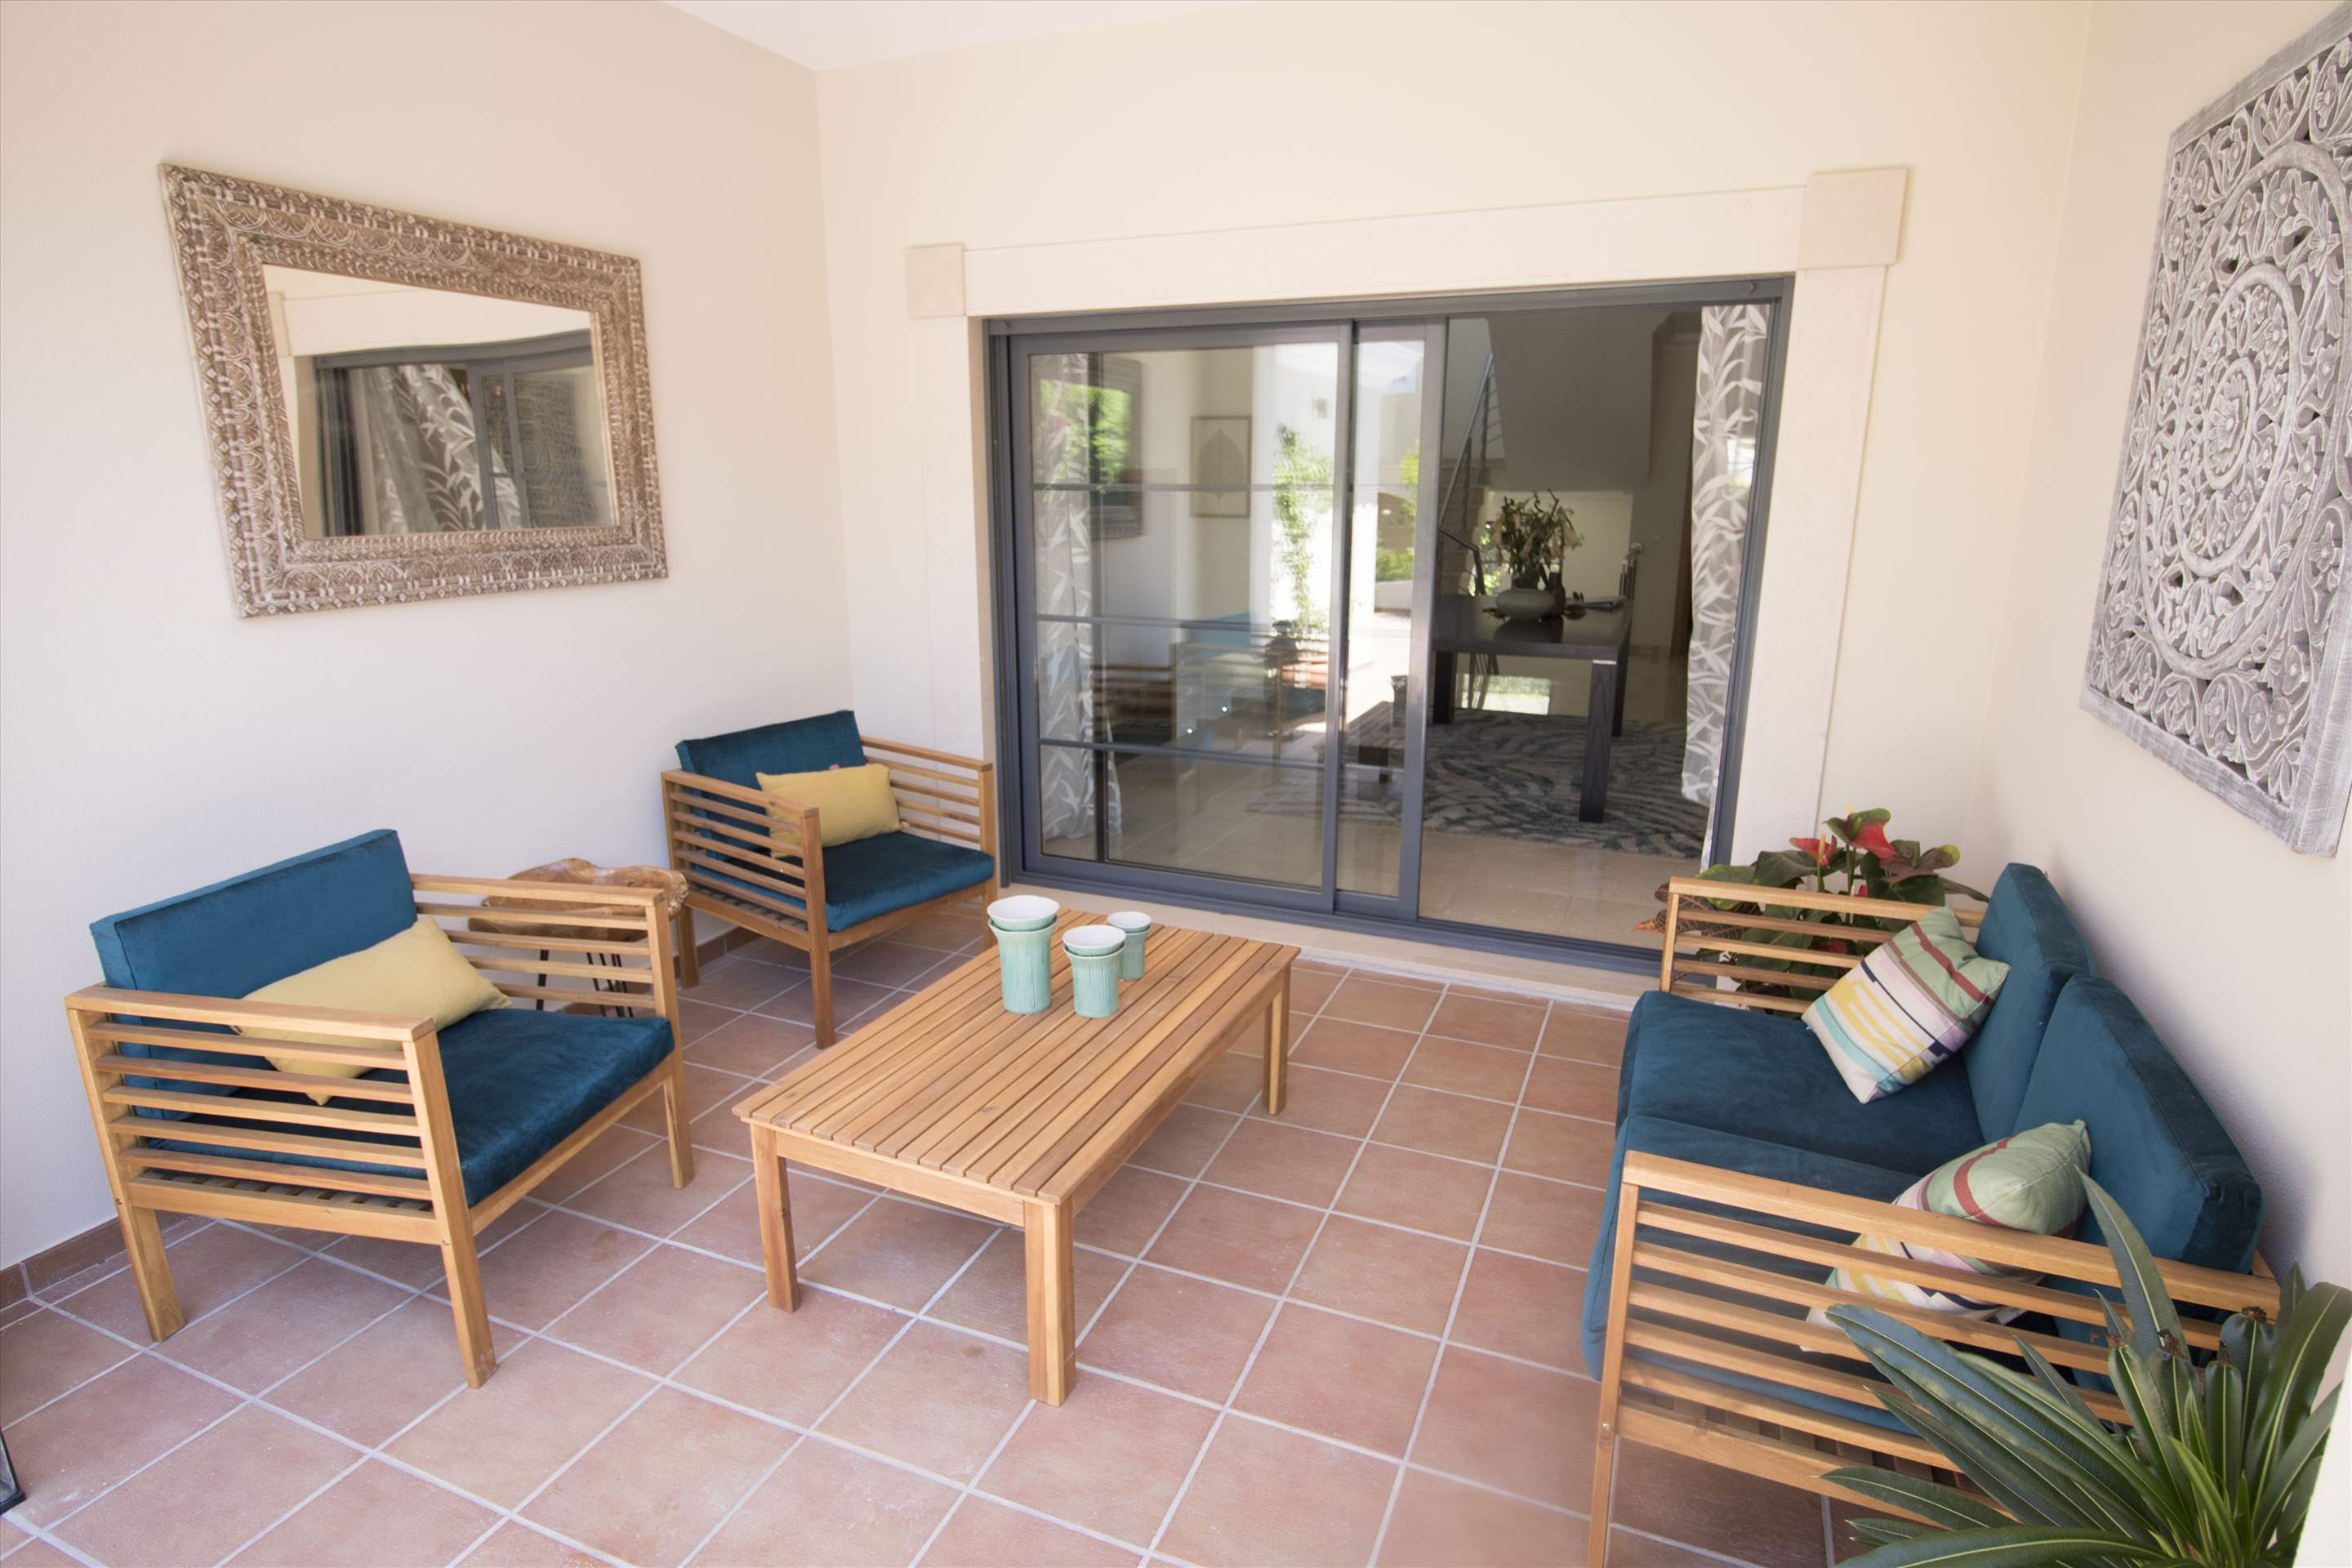 Villa Meryl, 5 bedroom villa in Vale do Lobo, Algarve Photo #11